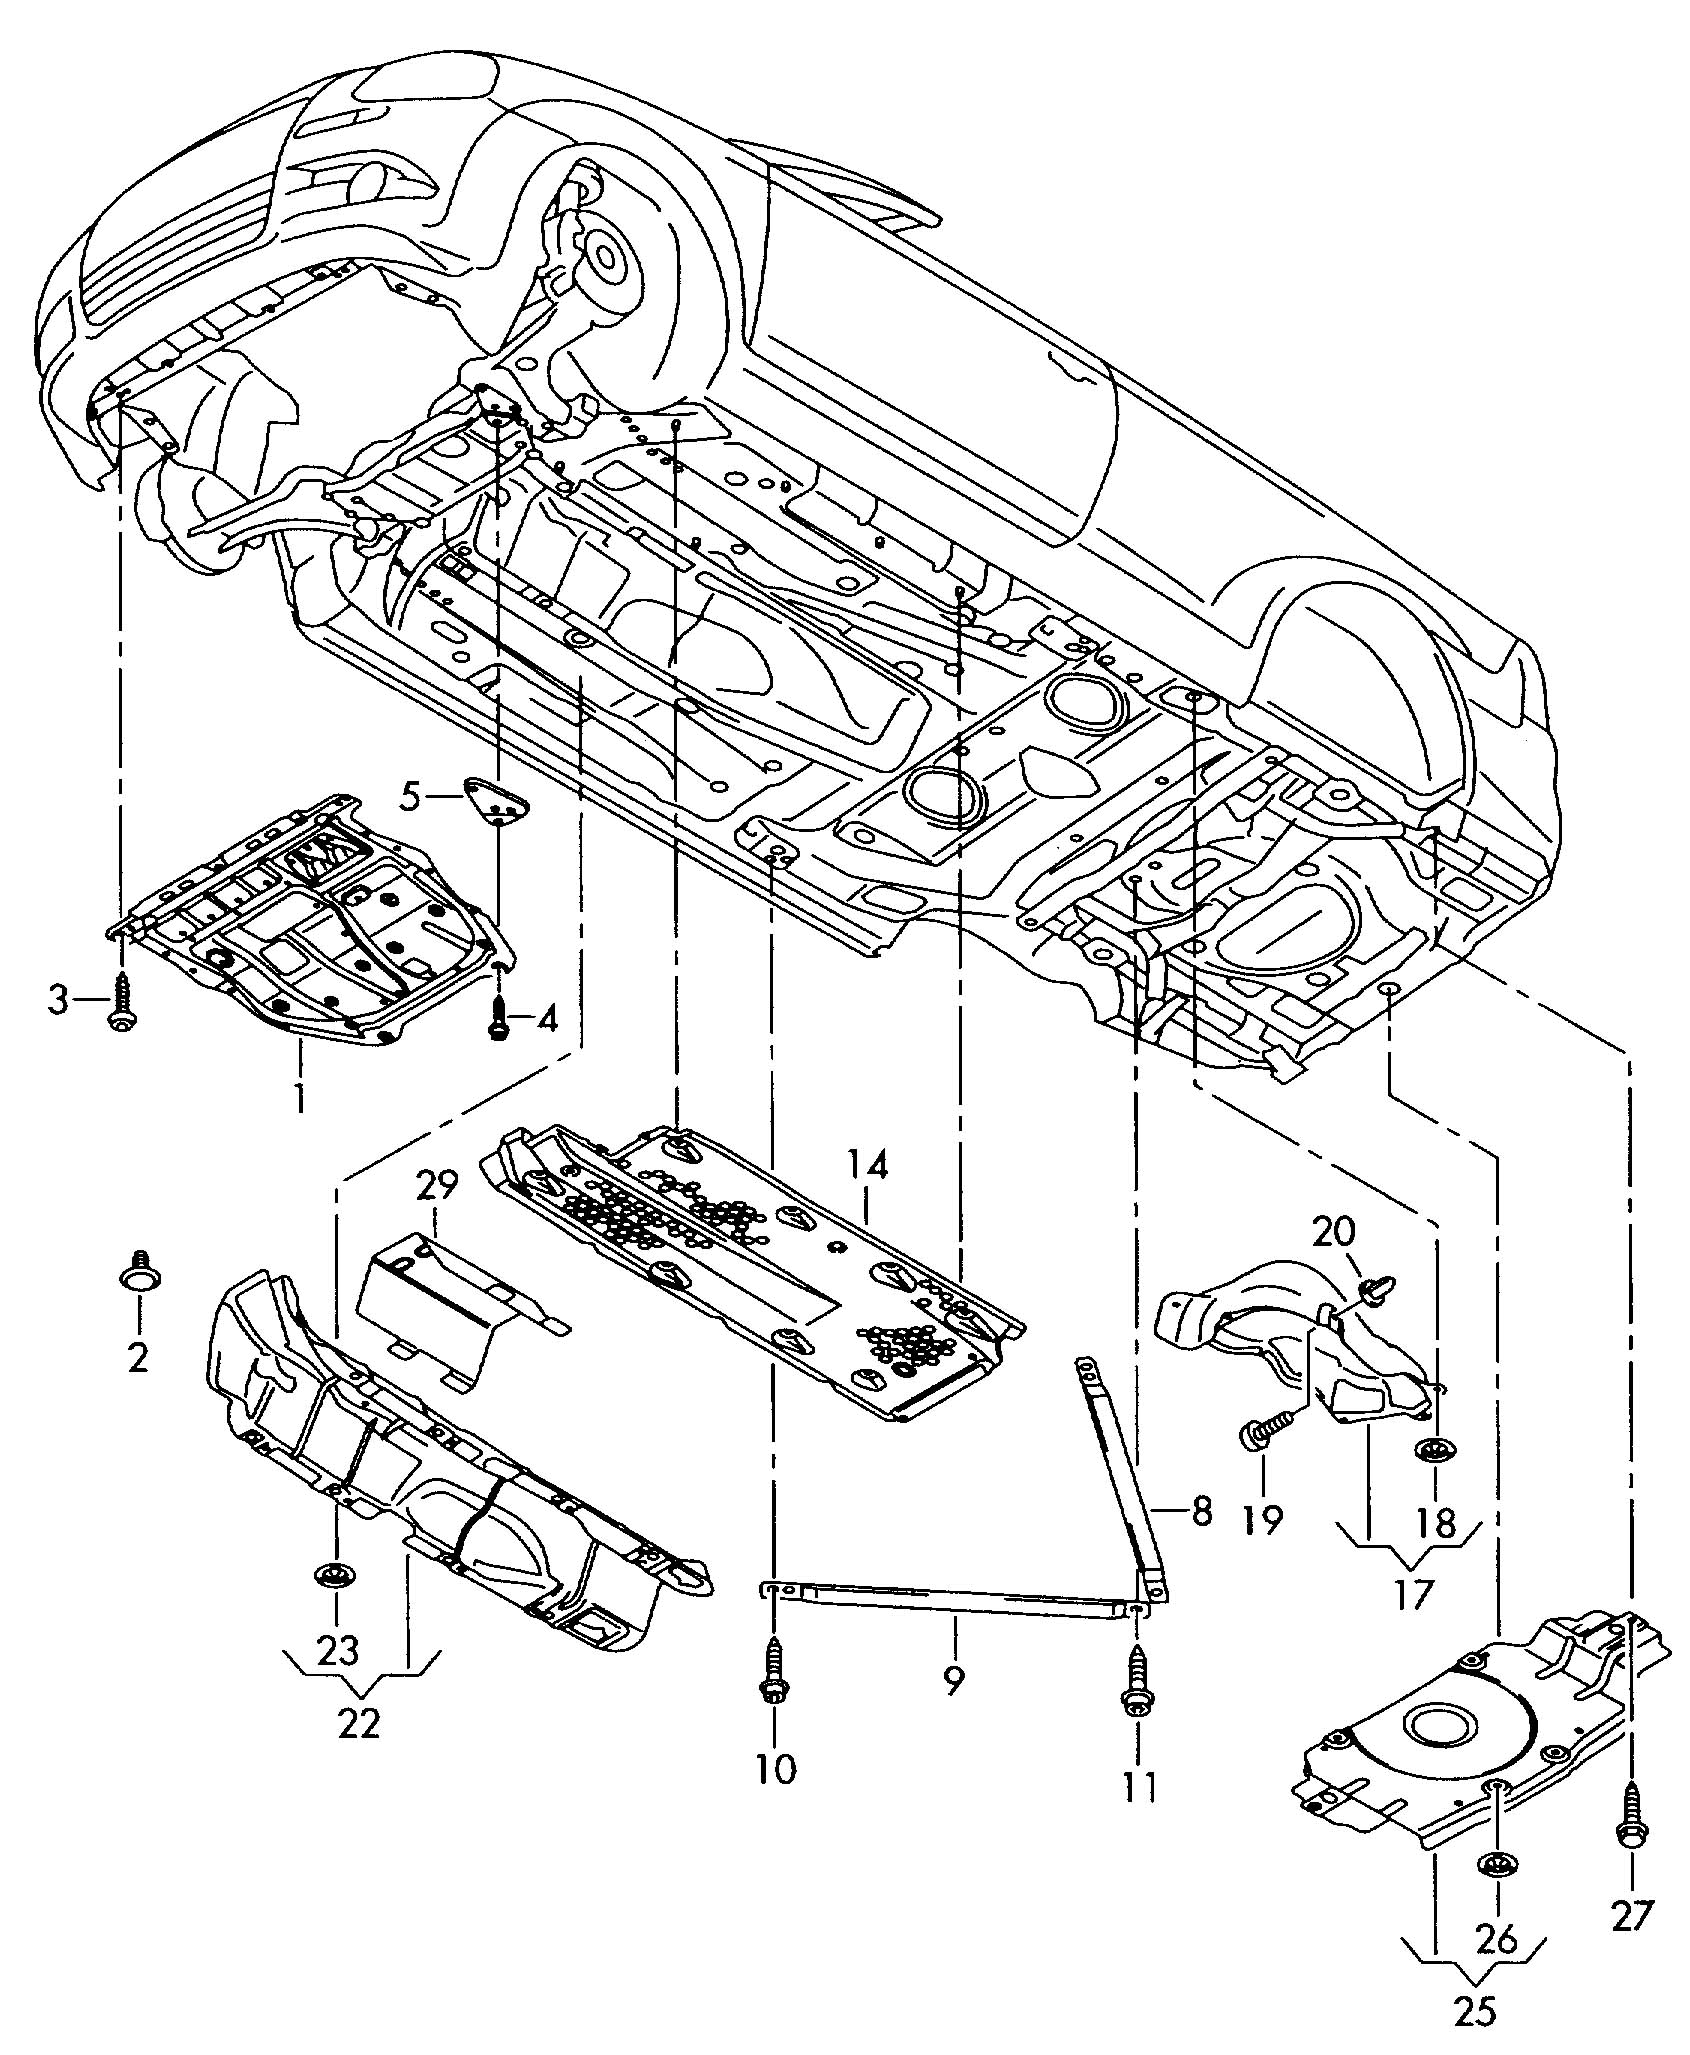 [DIAGRAM] 2012 Volkswagen Tiguan Engine Diagram FULL